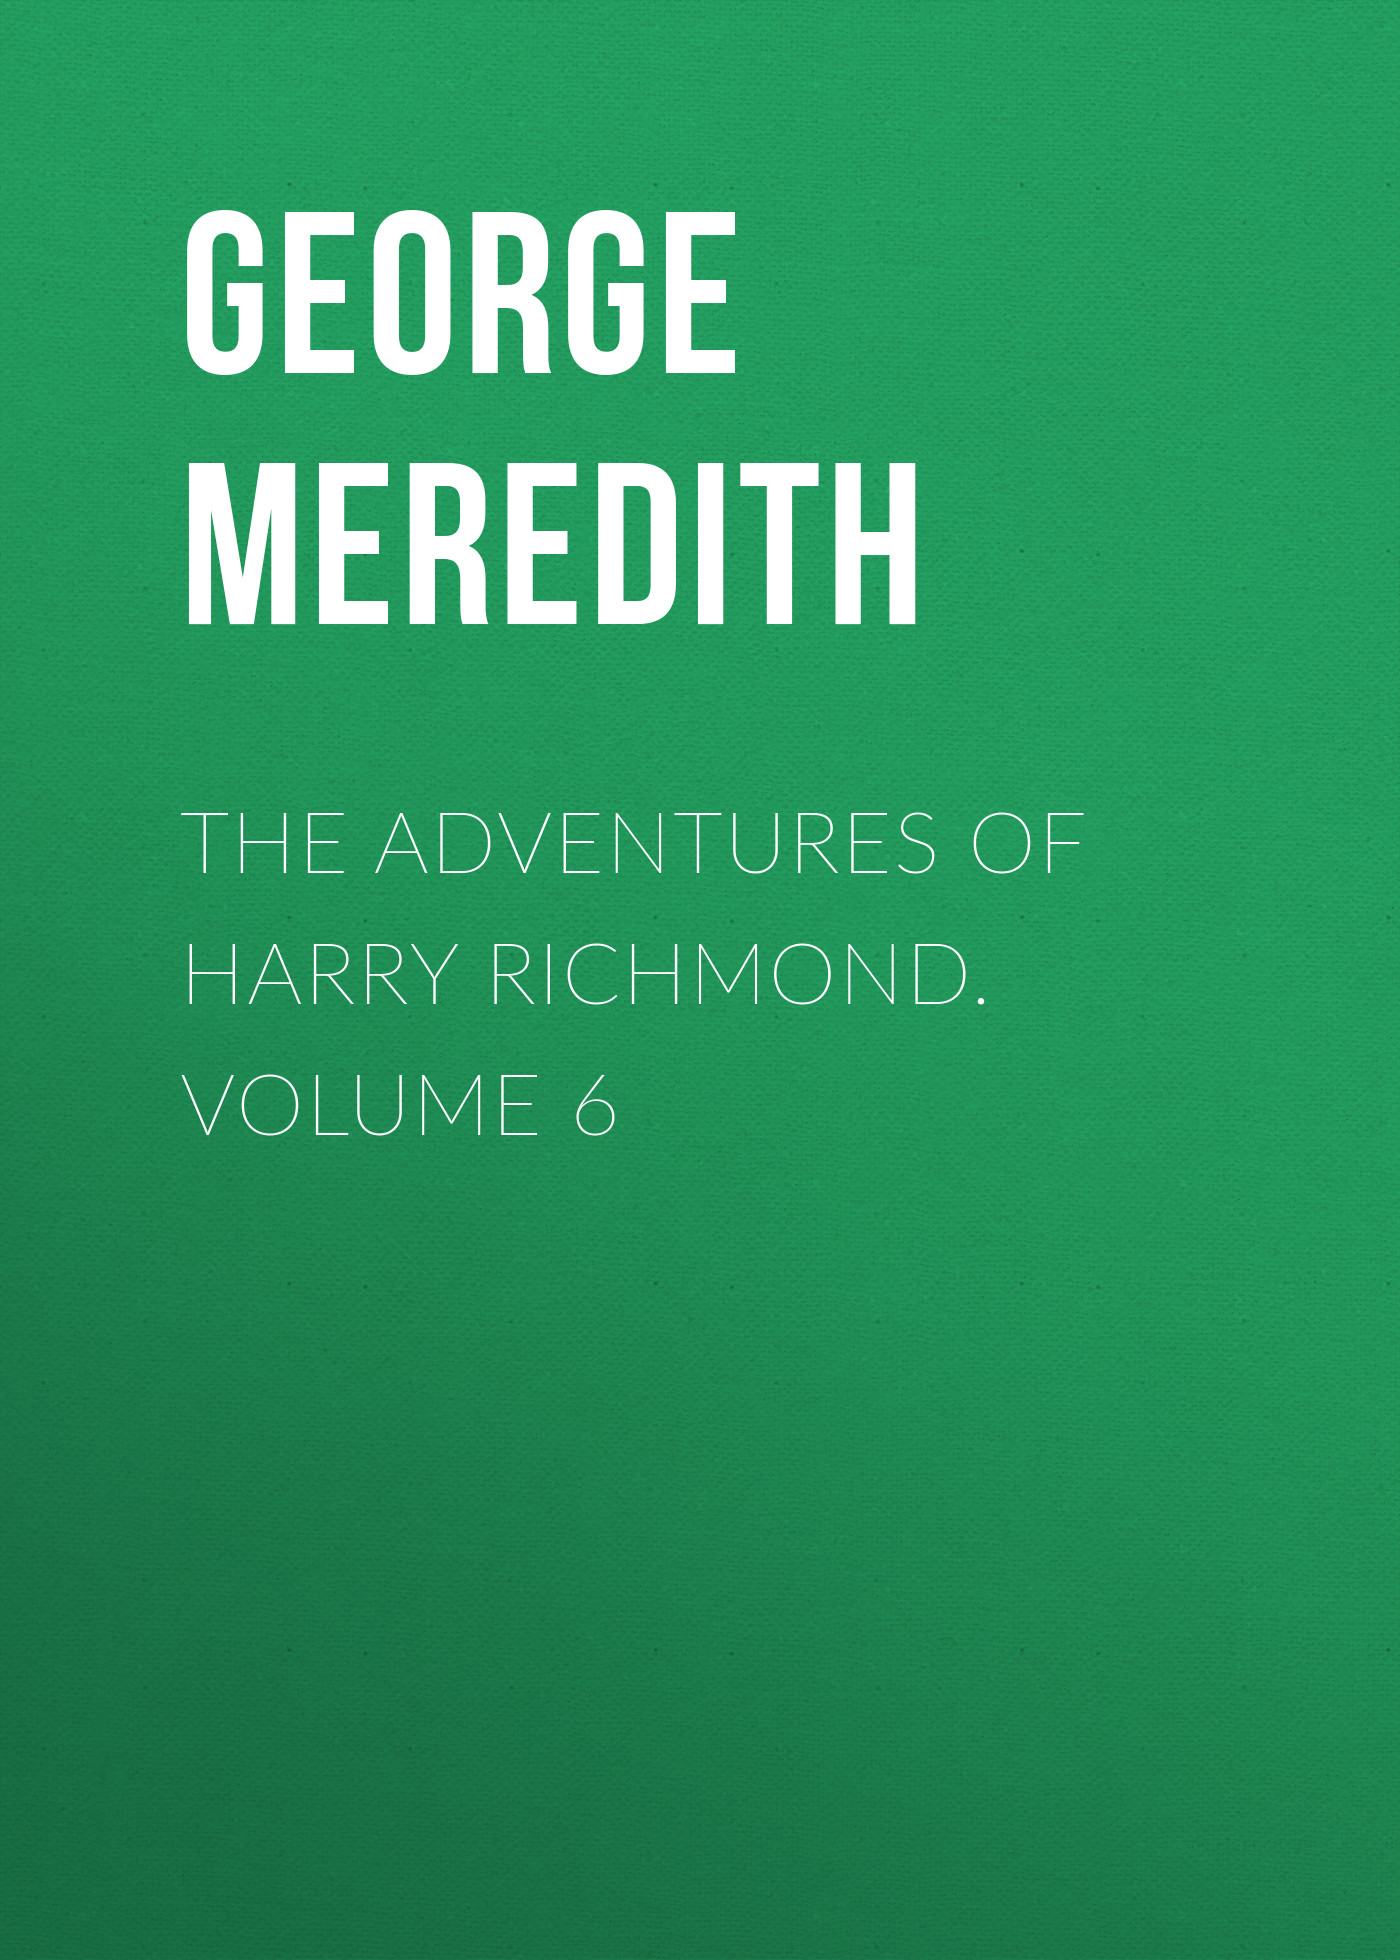 George Meredith The Adventures of Harry Richmond. Volume 6